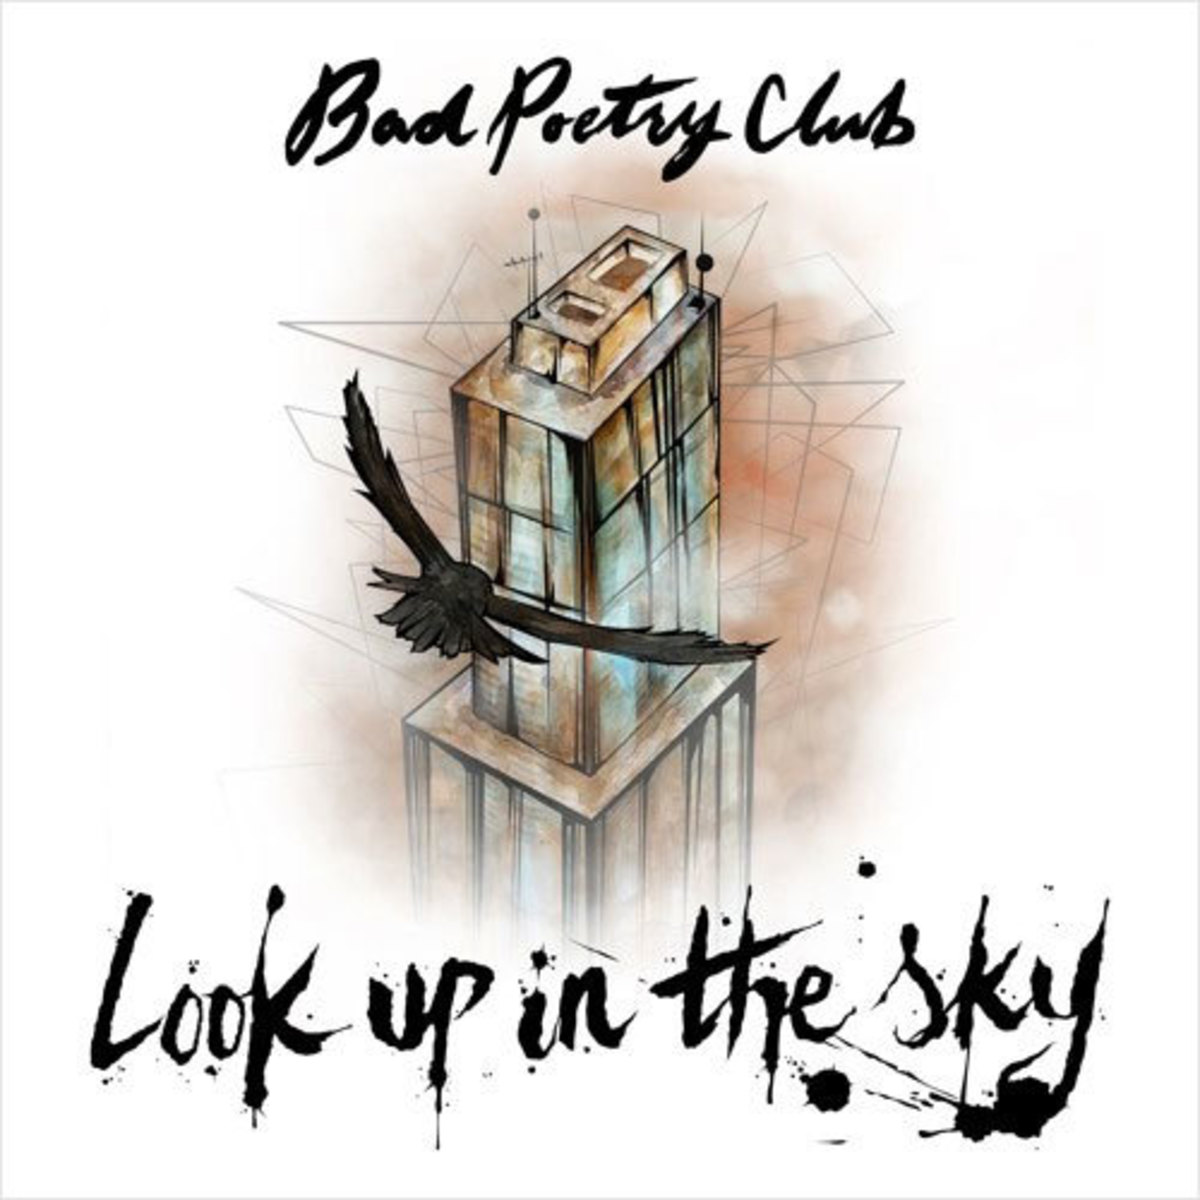 bad-poetry-club-look-up-in-the-sky.jpg